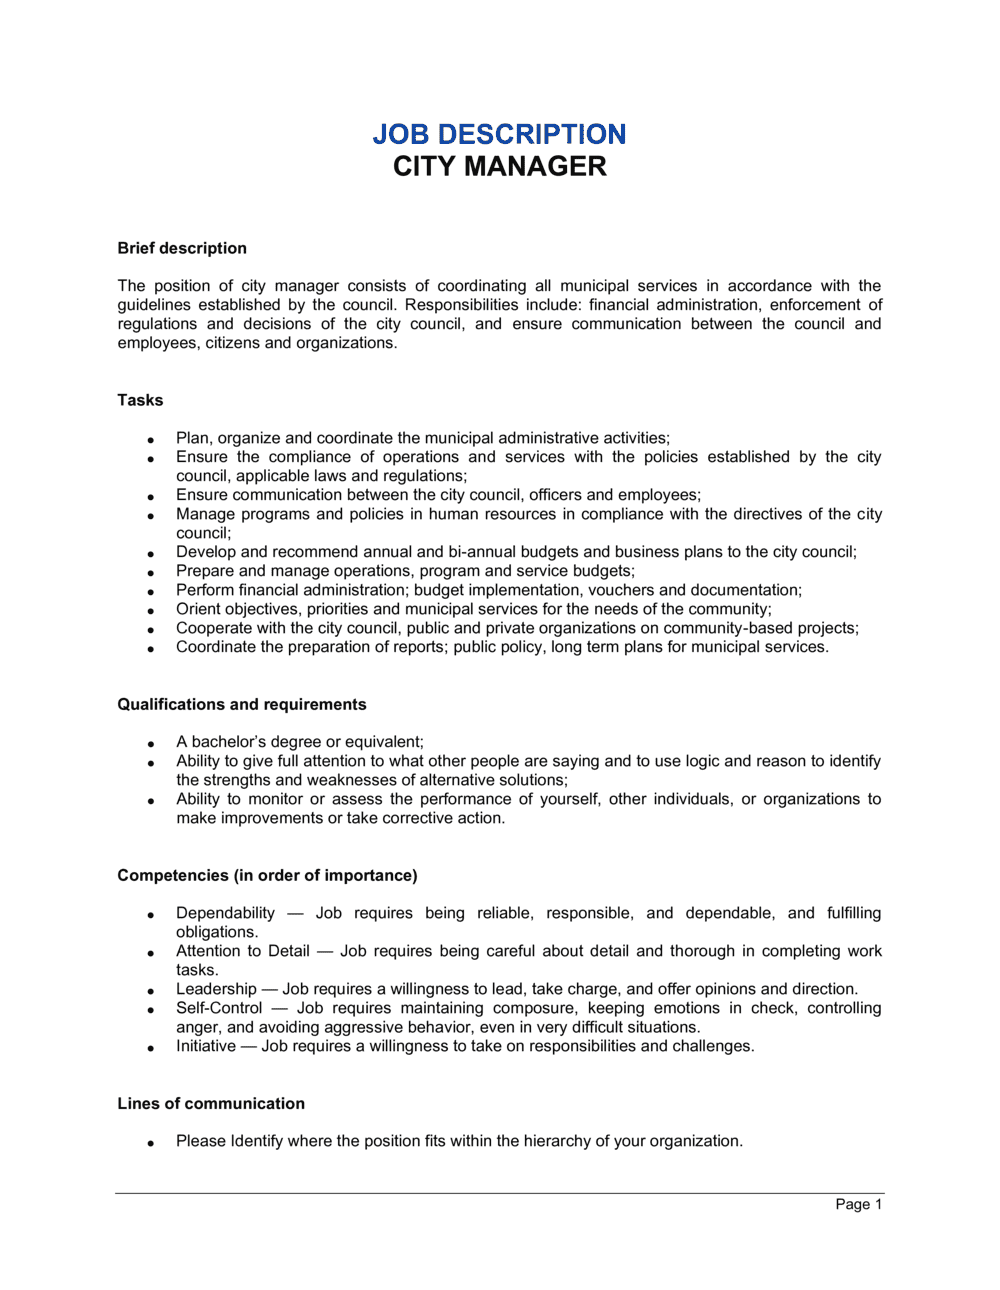 Business-in-a-Box's City Manager Job Description Template